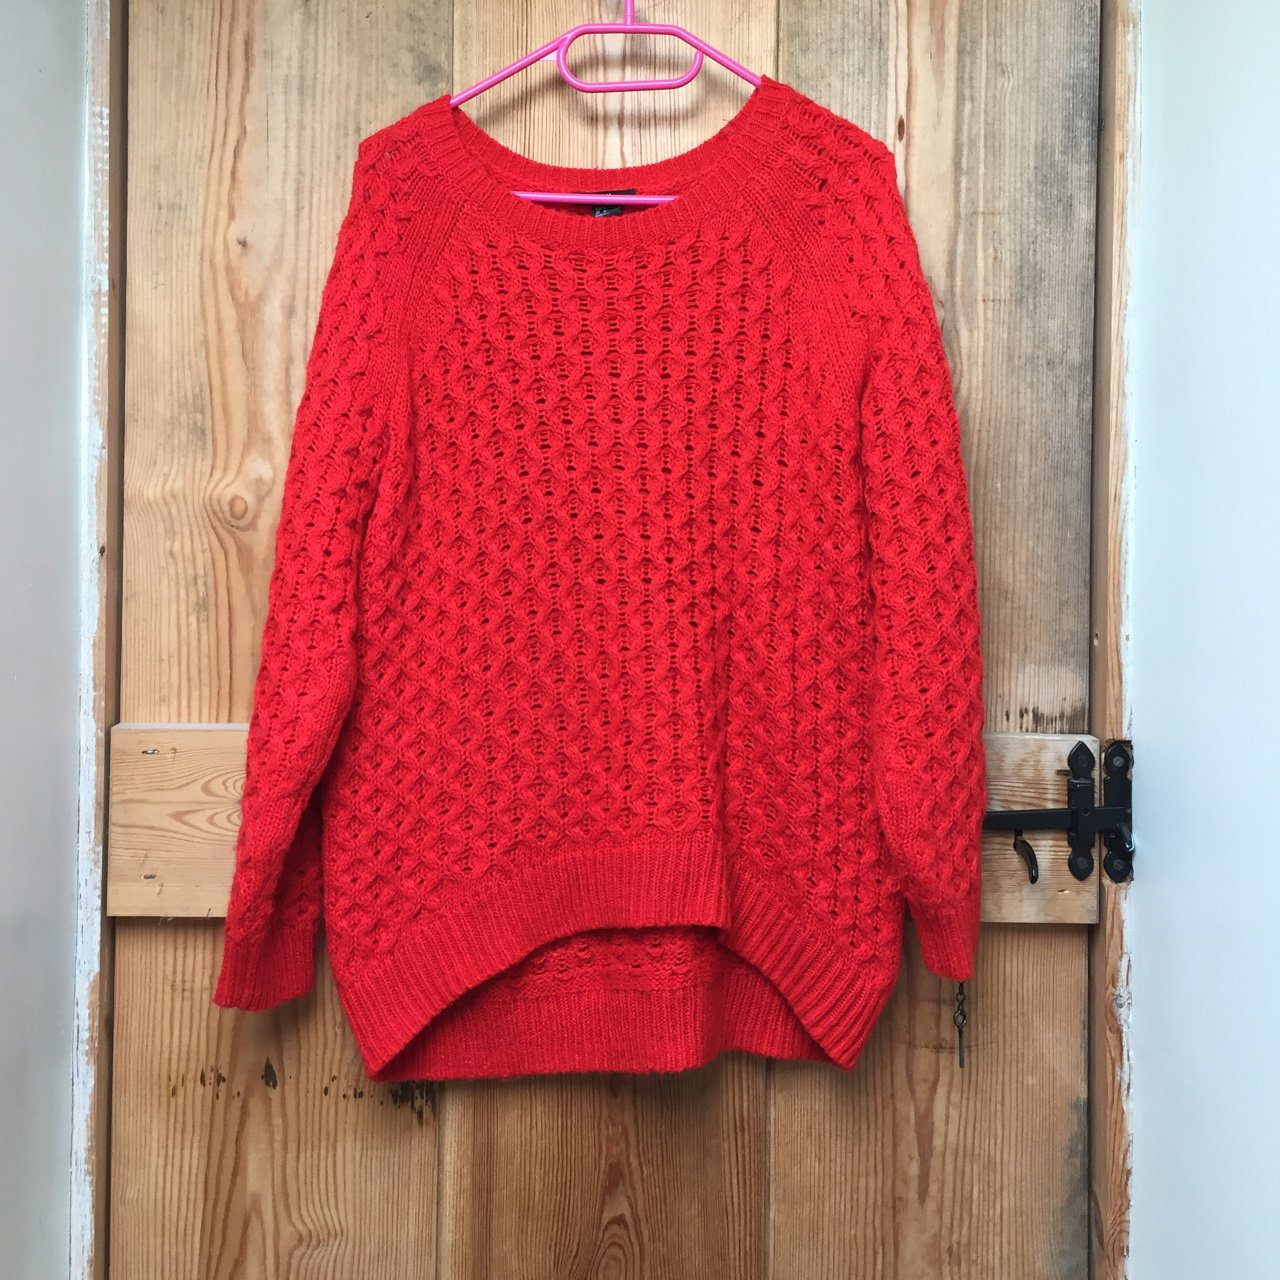 90cdeac89f Red knitted jumper. H M. It s warm and soft. It says it s an - Depop